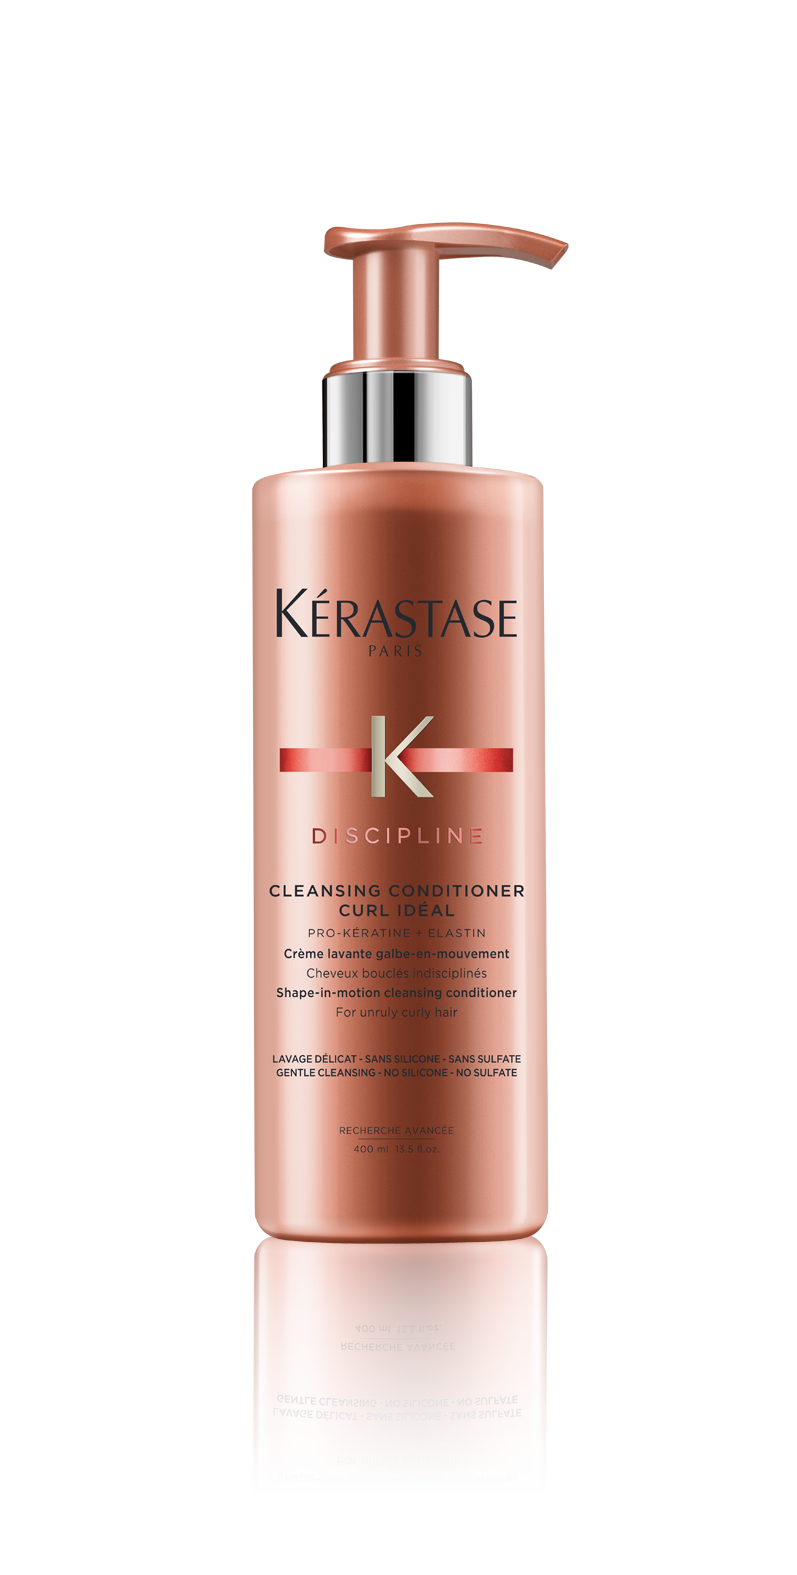 Kérastase Curl Idéal Cleansing Conditioner 400ml